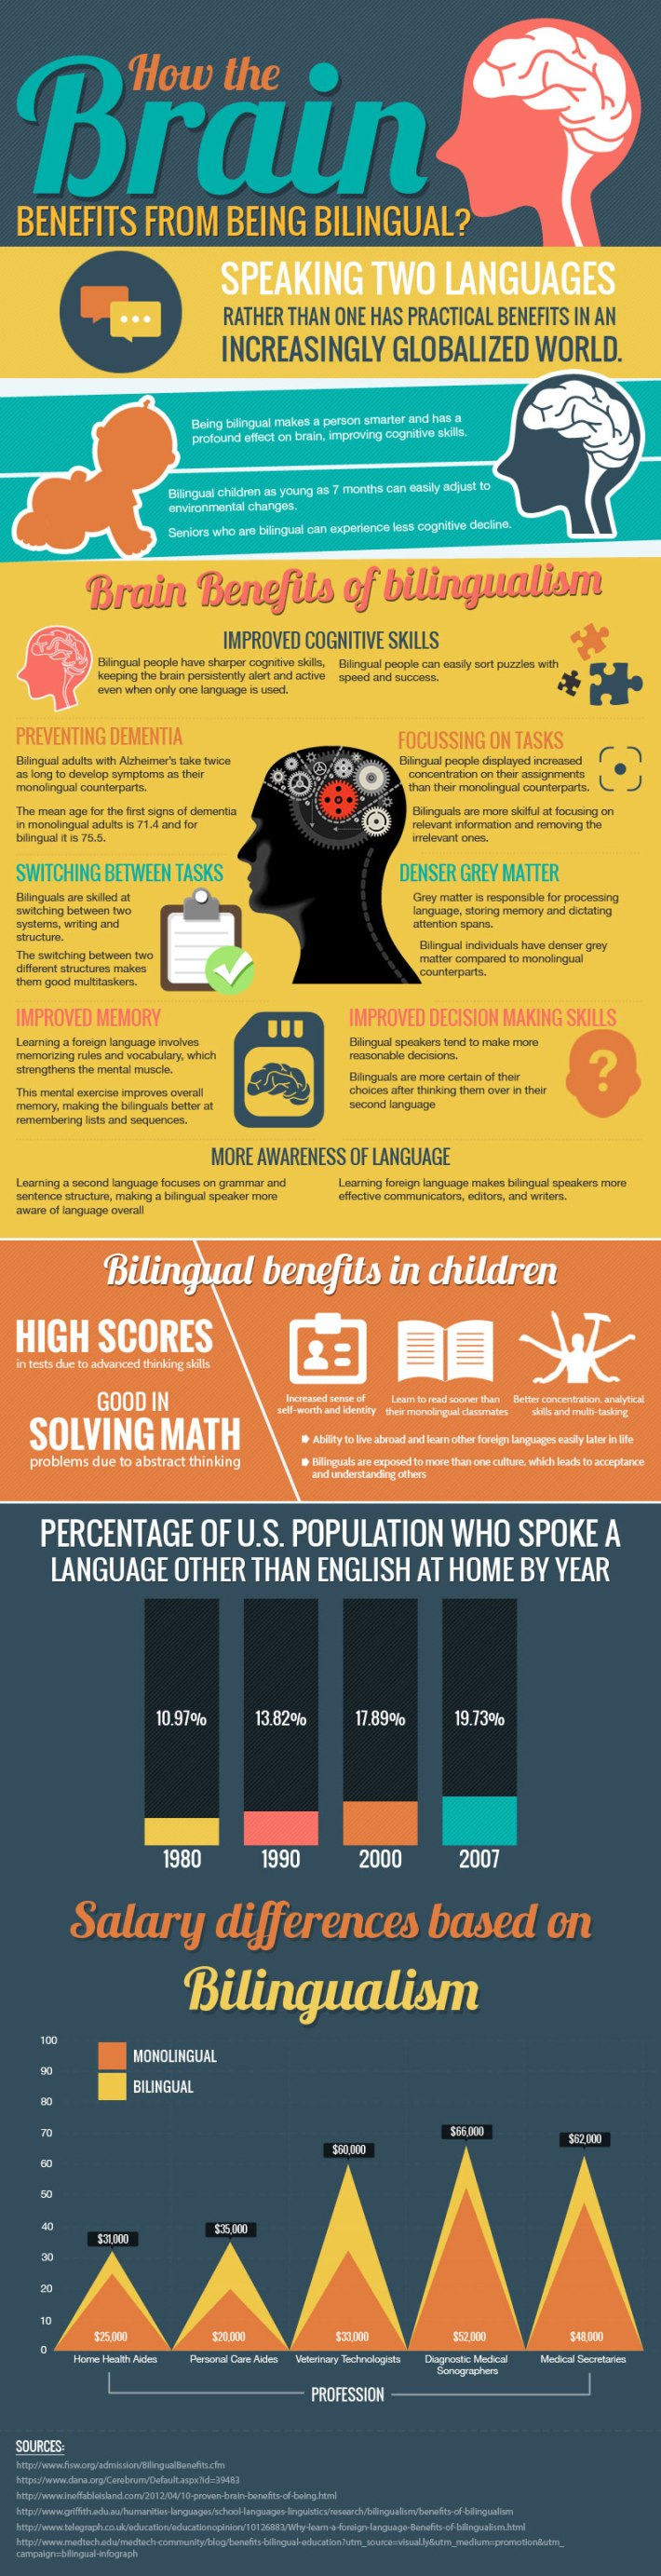 How-the-Brain-Benefits-from-Being-Bilingual-Infographic